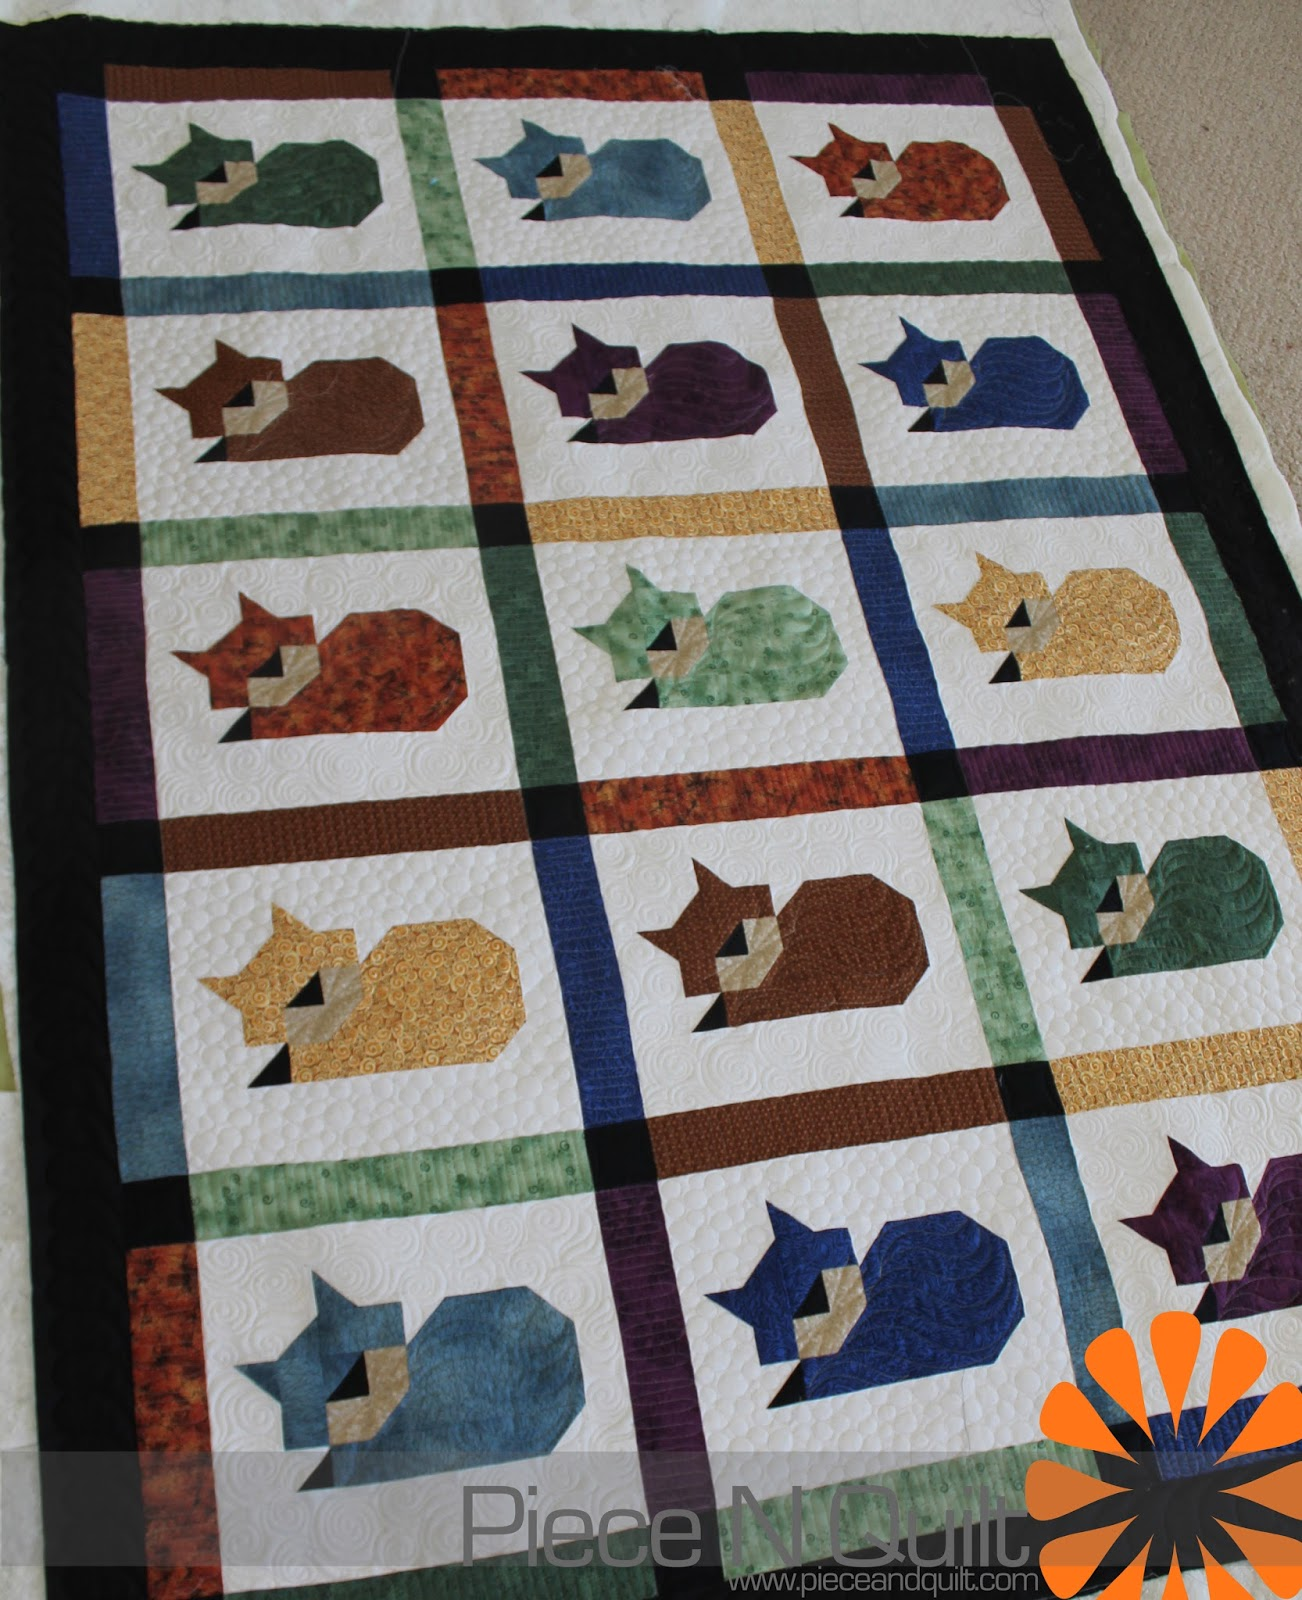 Piece N Quilt Cat Quilt With An Awesome Story